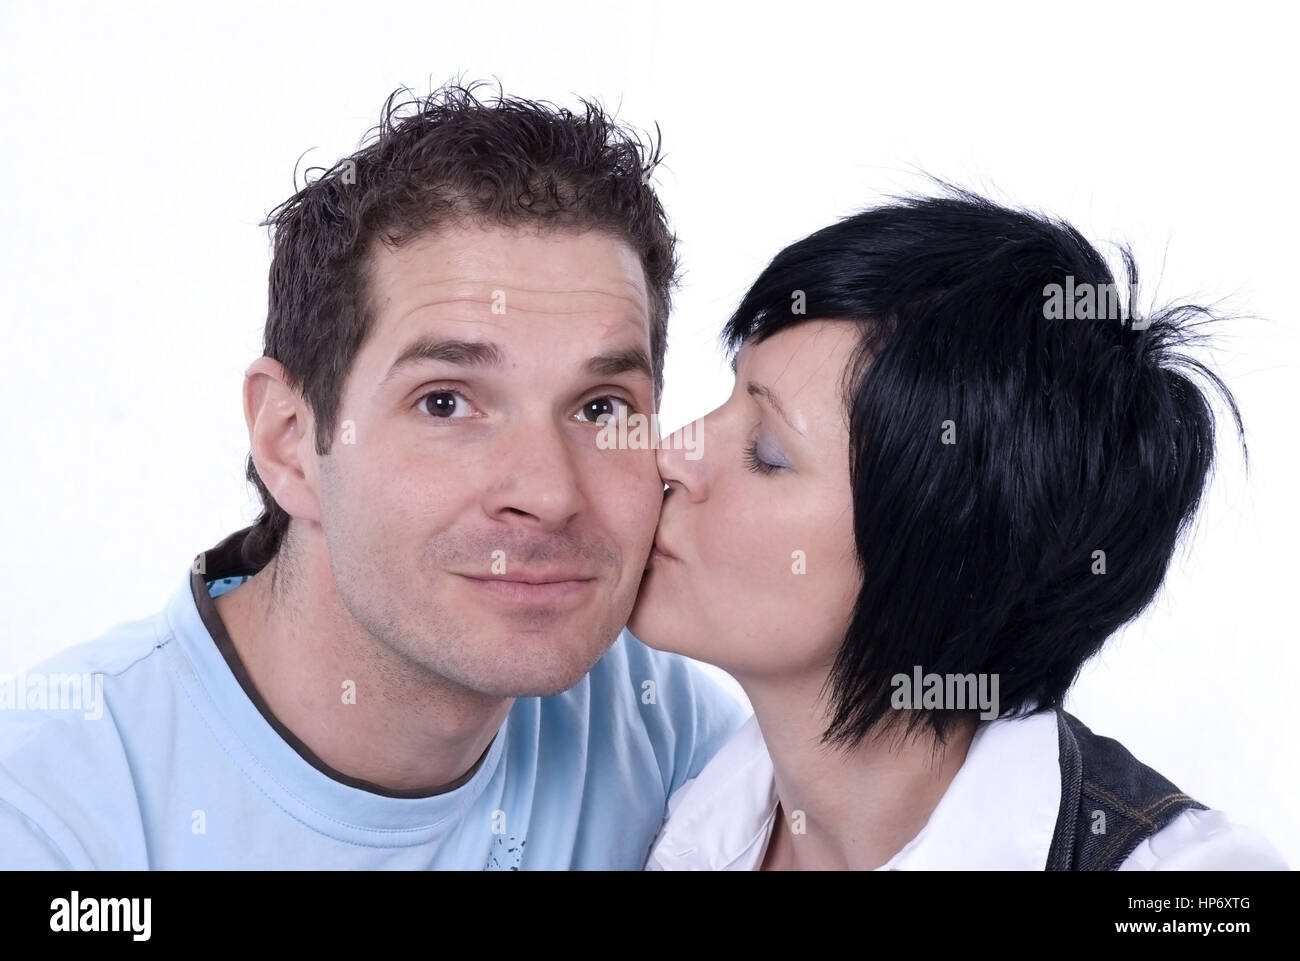 Model released , Liebespaar, 30+ - love couple - Stock Image